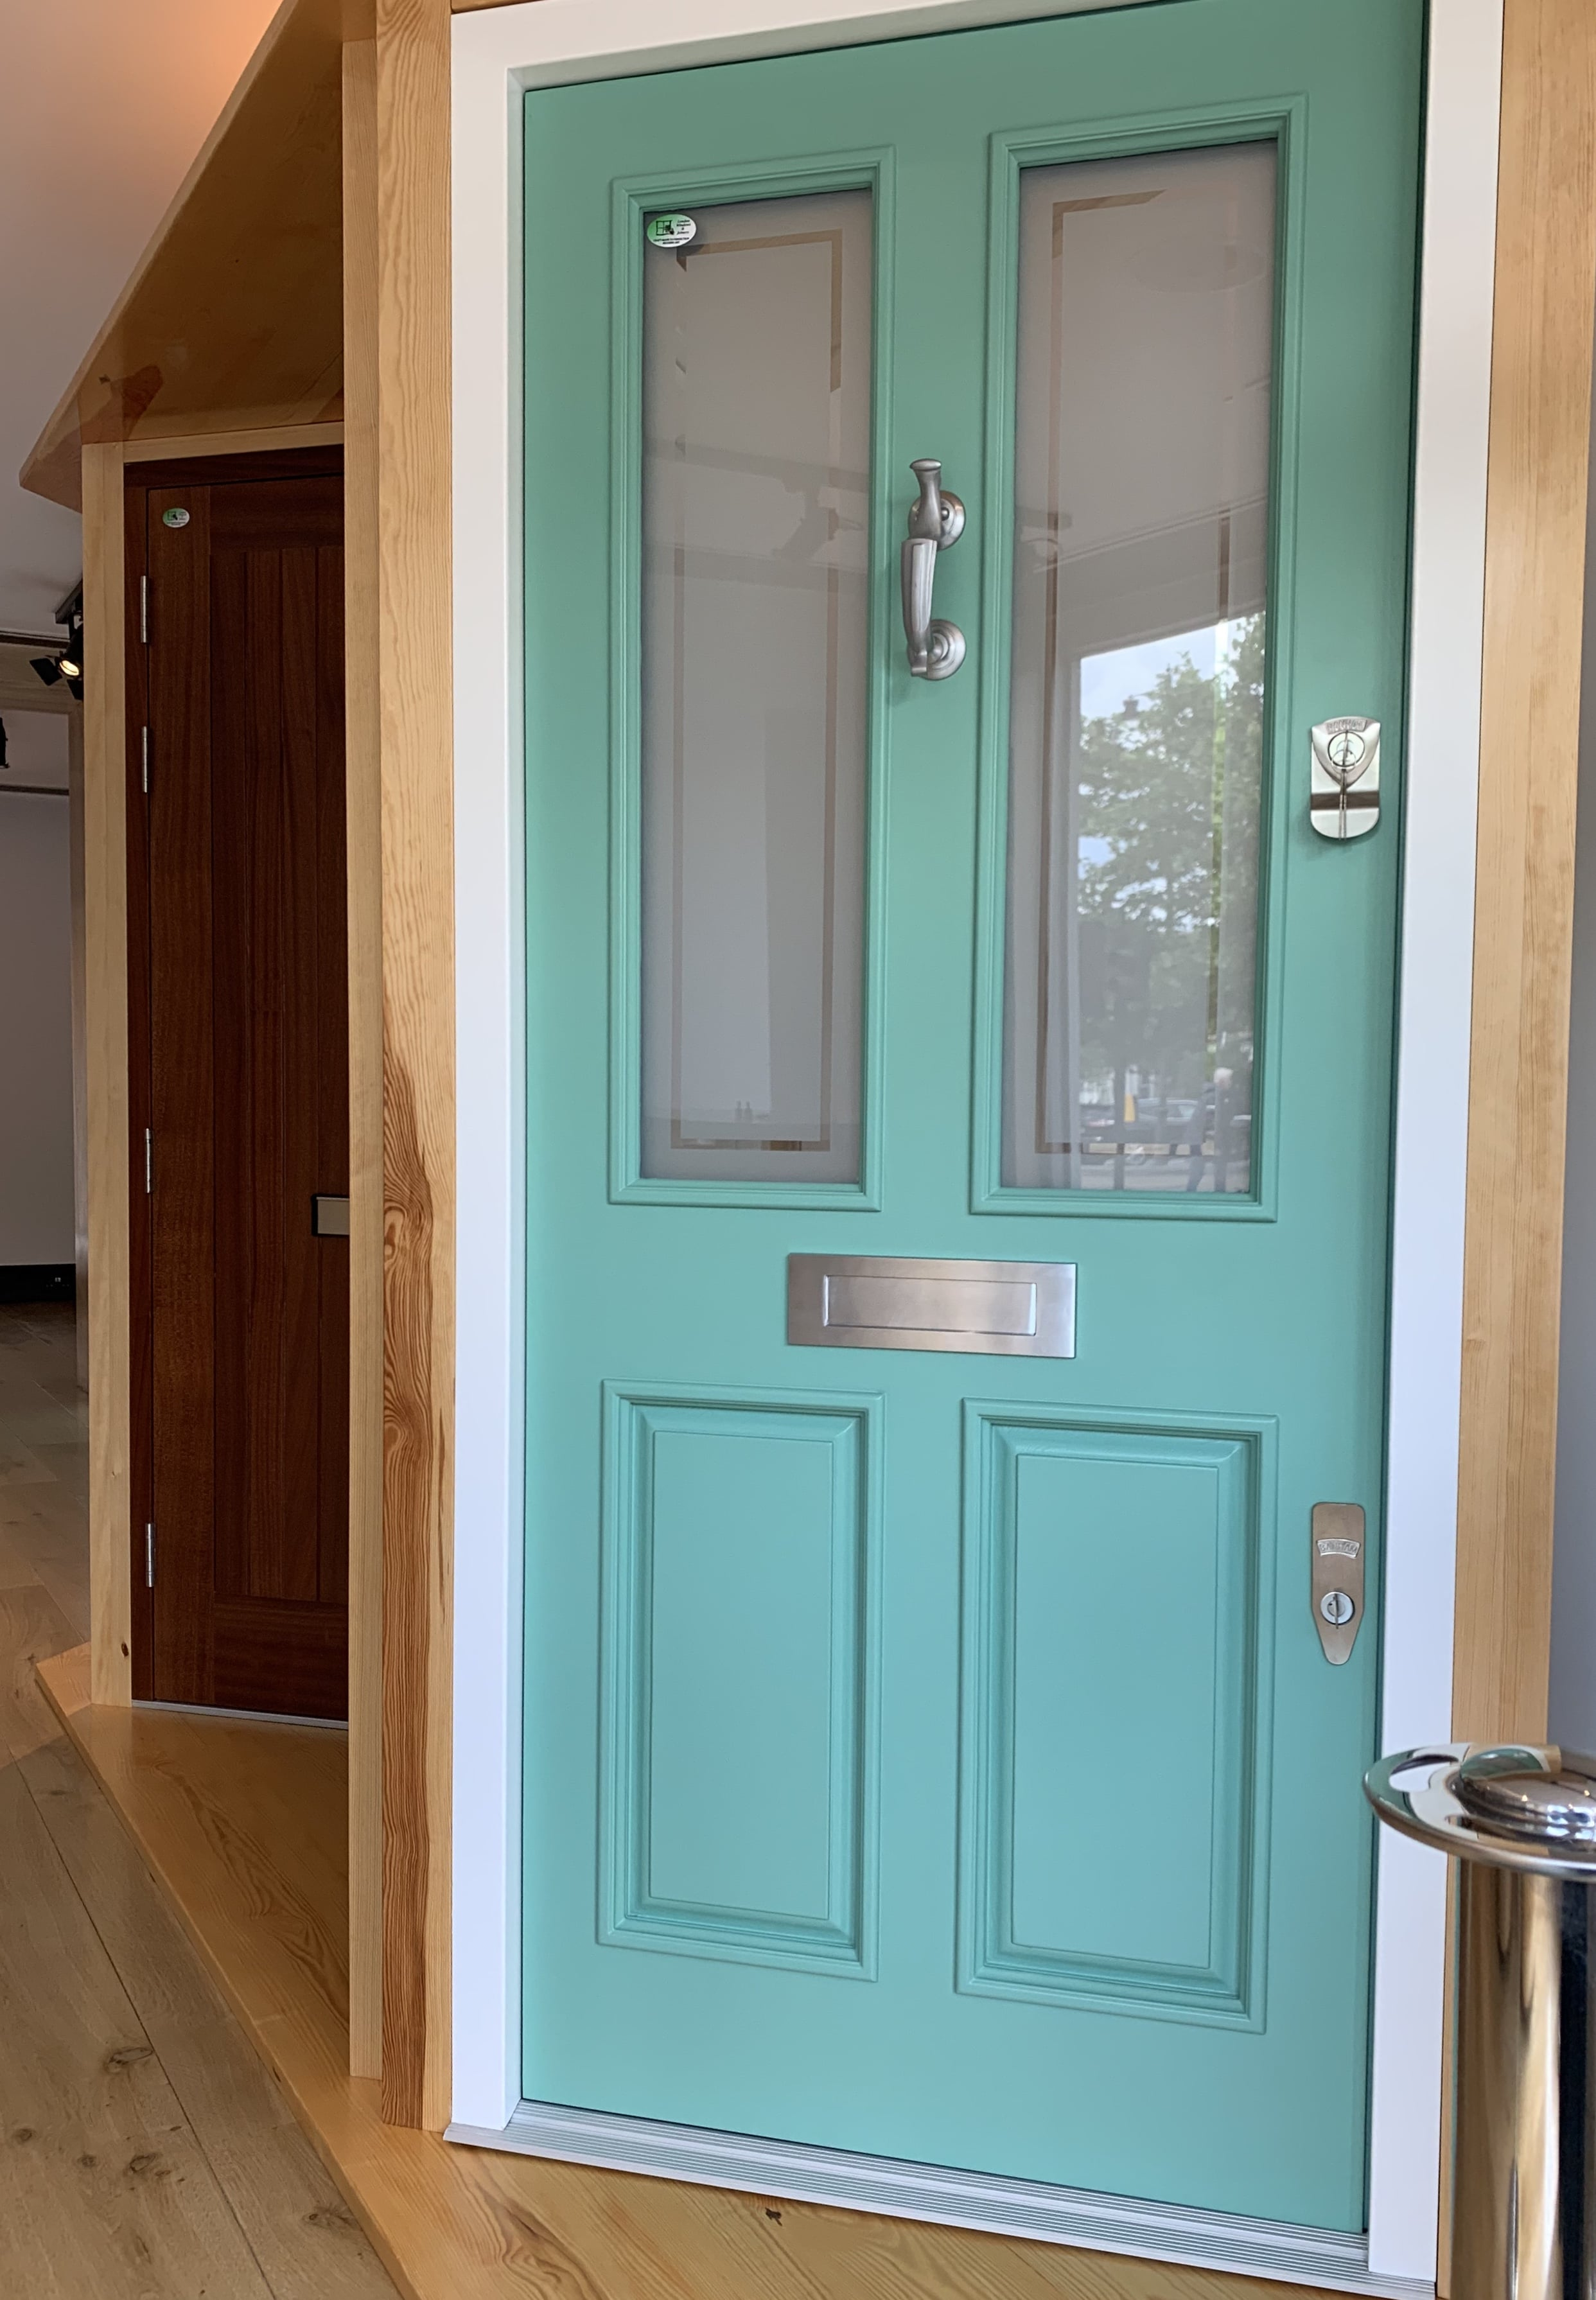 Four panel hardwood front door, featuring toughened decorative glass, door knocker and letter box. Banham double safety lock.